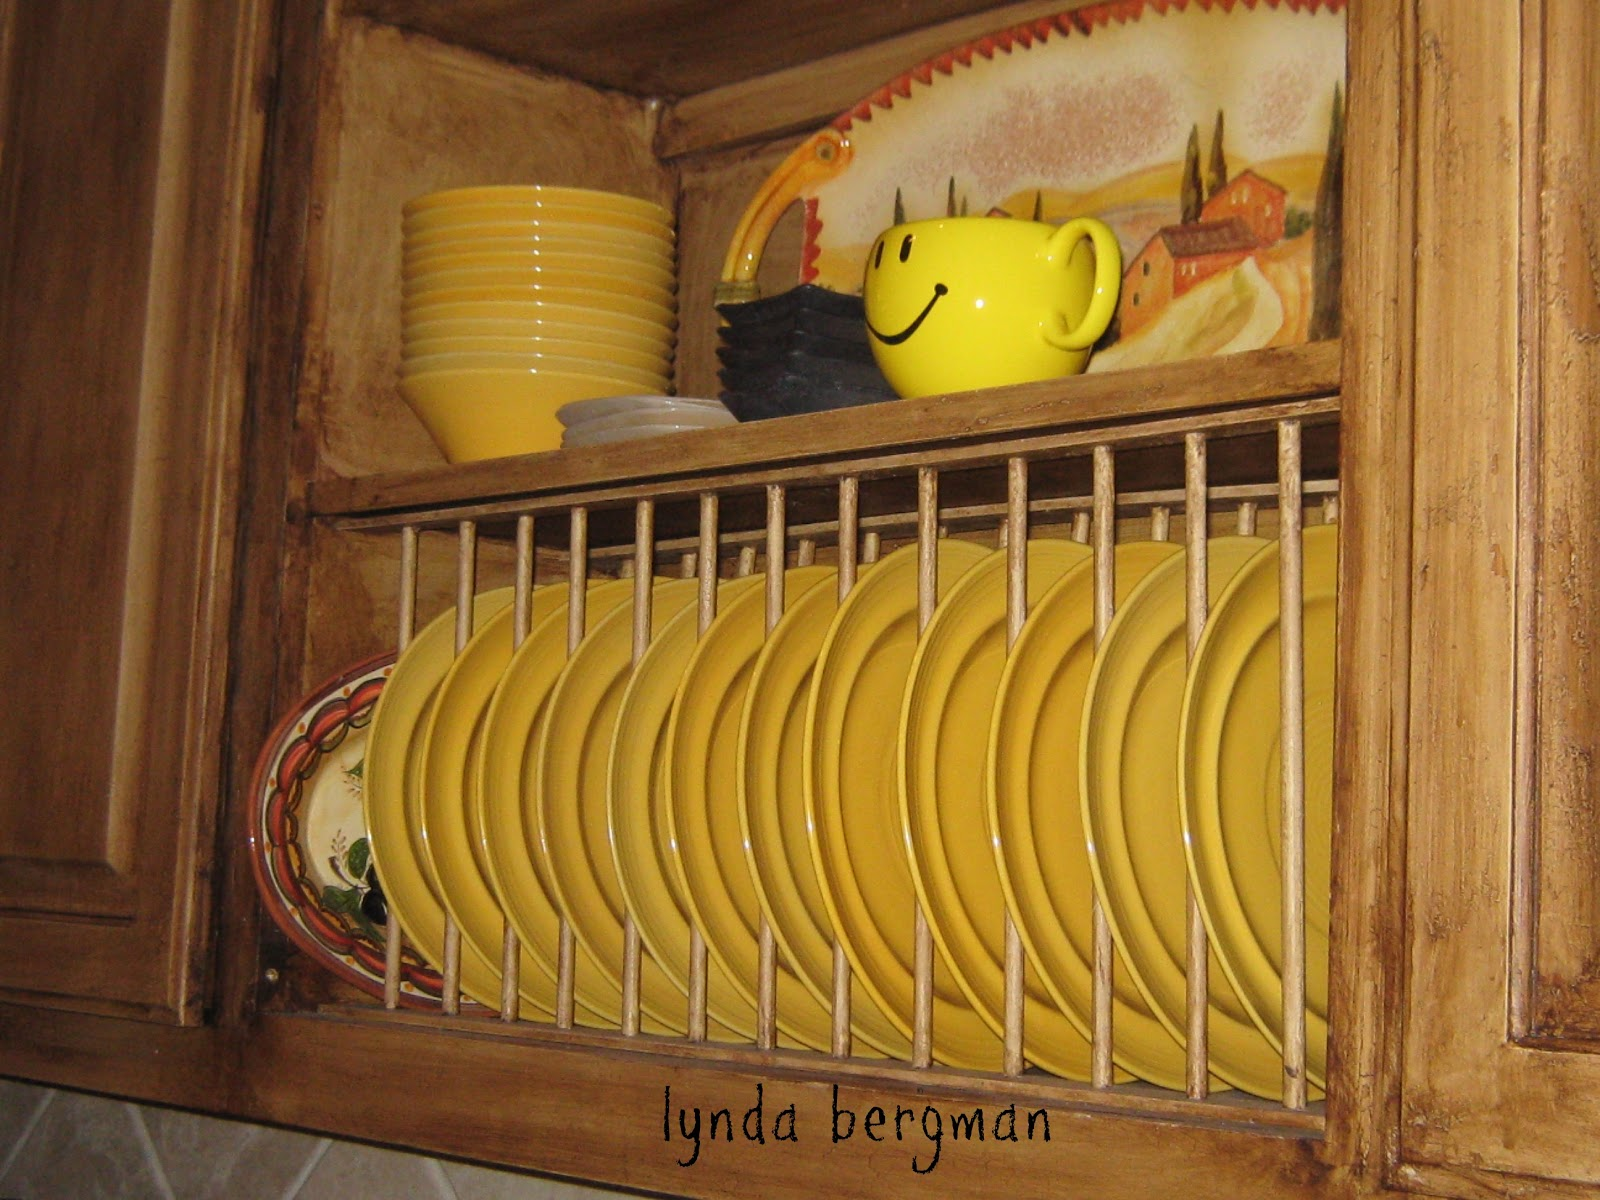 LYNDA BERGMAN DECORATIVE ARTISAN: HOW TO BUILD & INSTALL A PLATE ...